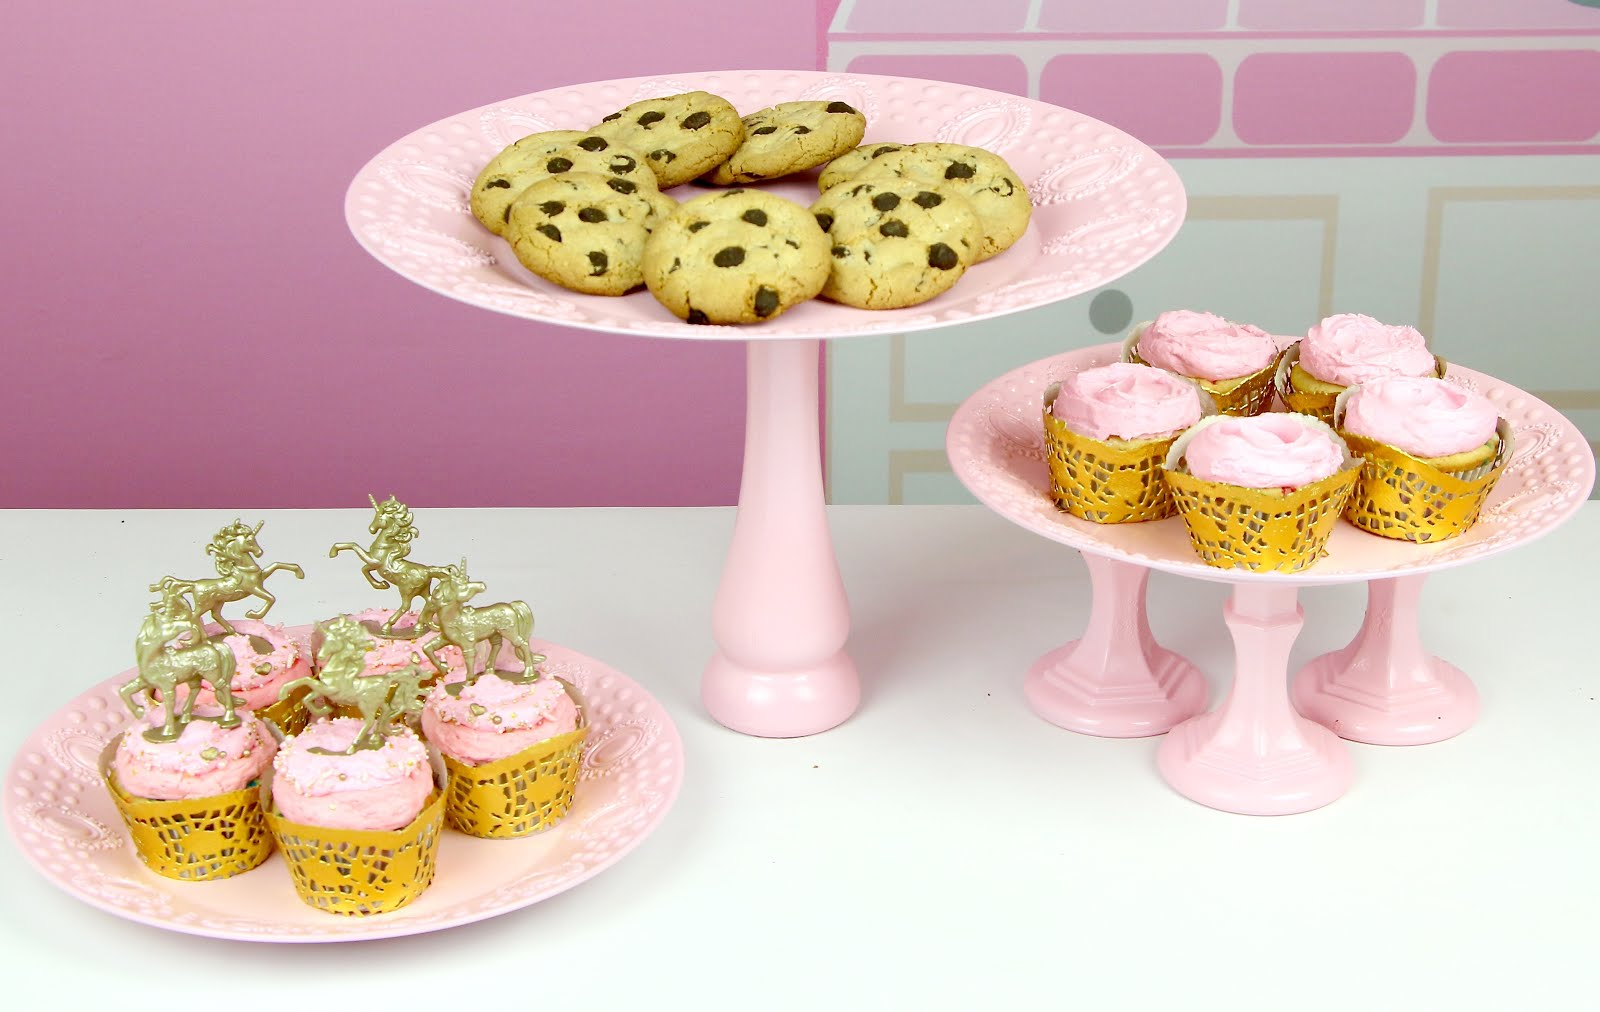 Here is a tall cookie plate with a 3 pedestal stand and a cupcake plate.  sc 1 st  Lindsay Ann Bakes & VIDEO DIY Dollar Store Cupcake Stand - Lindsay Ann Bakes